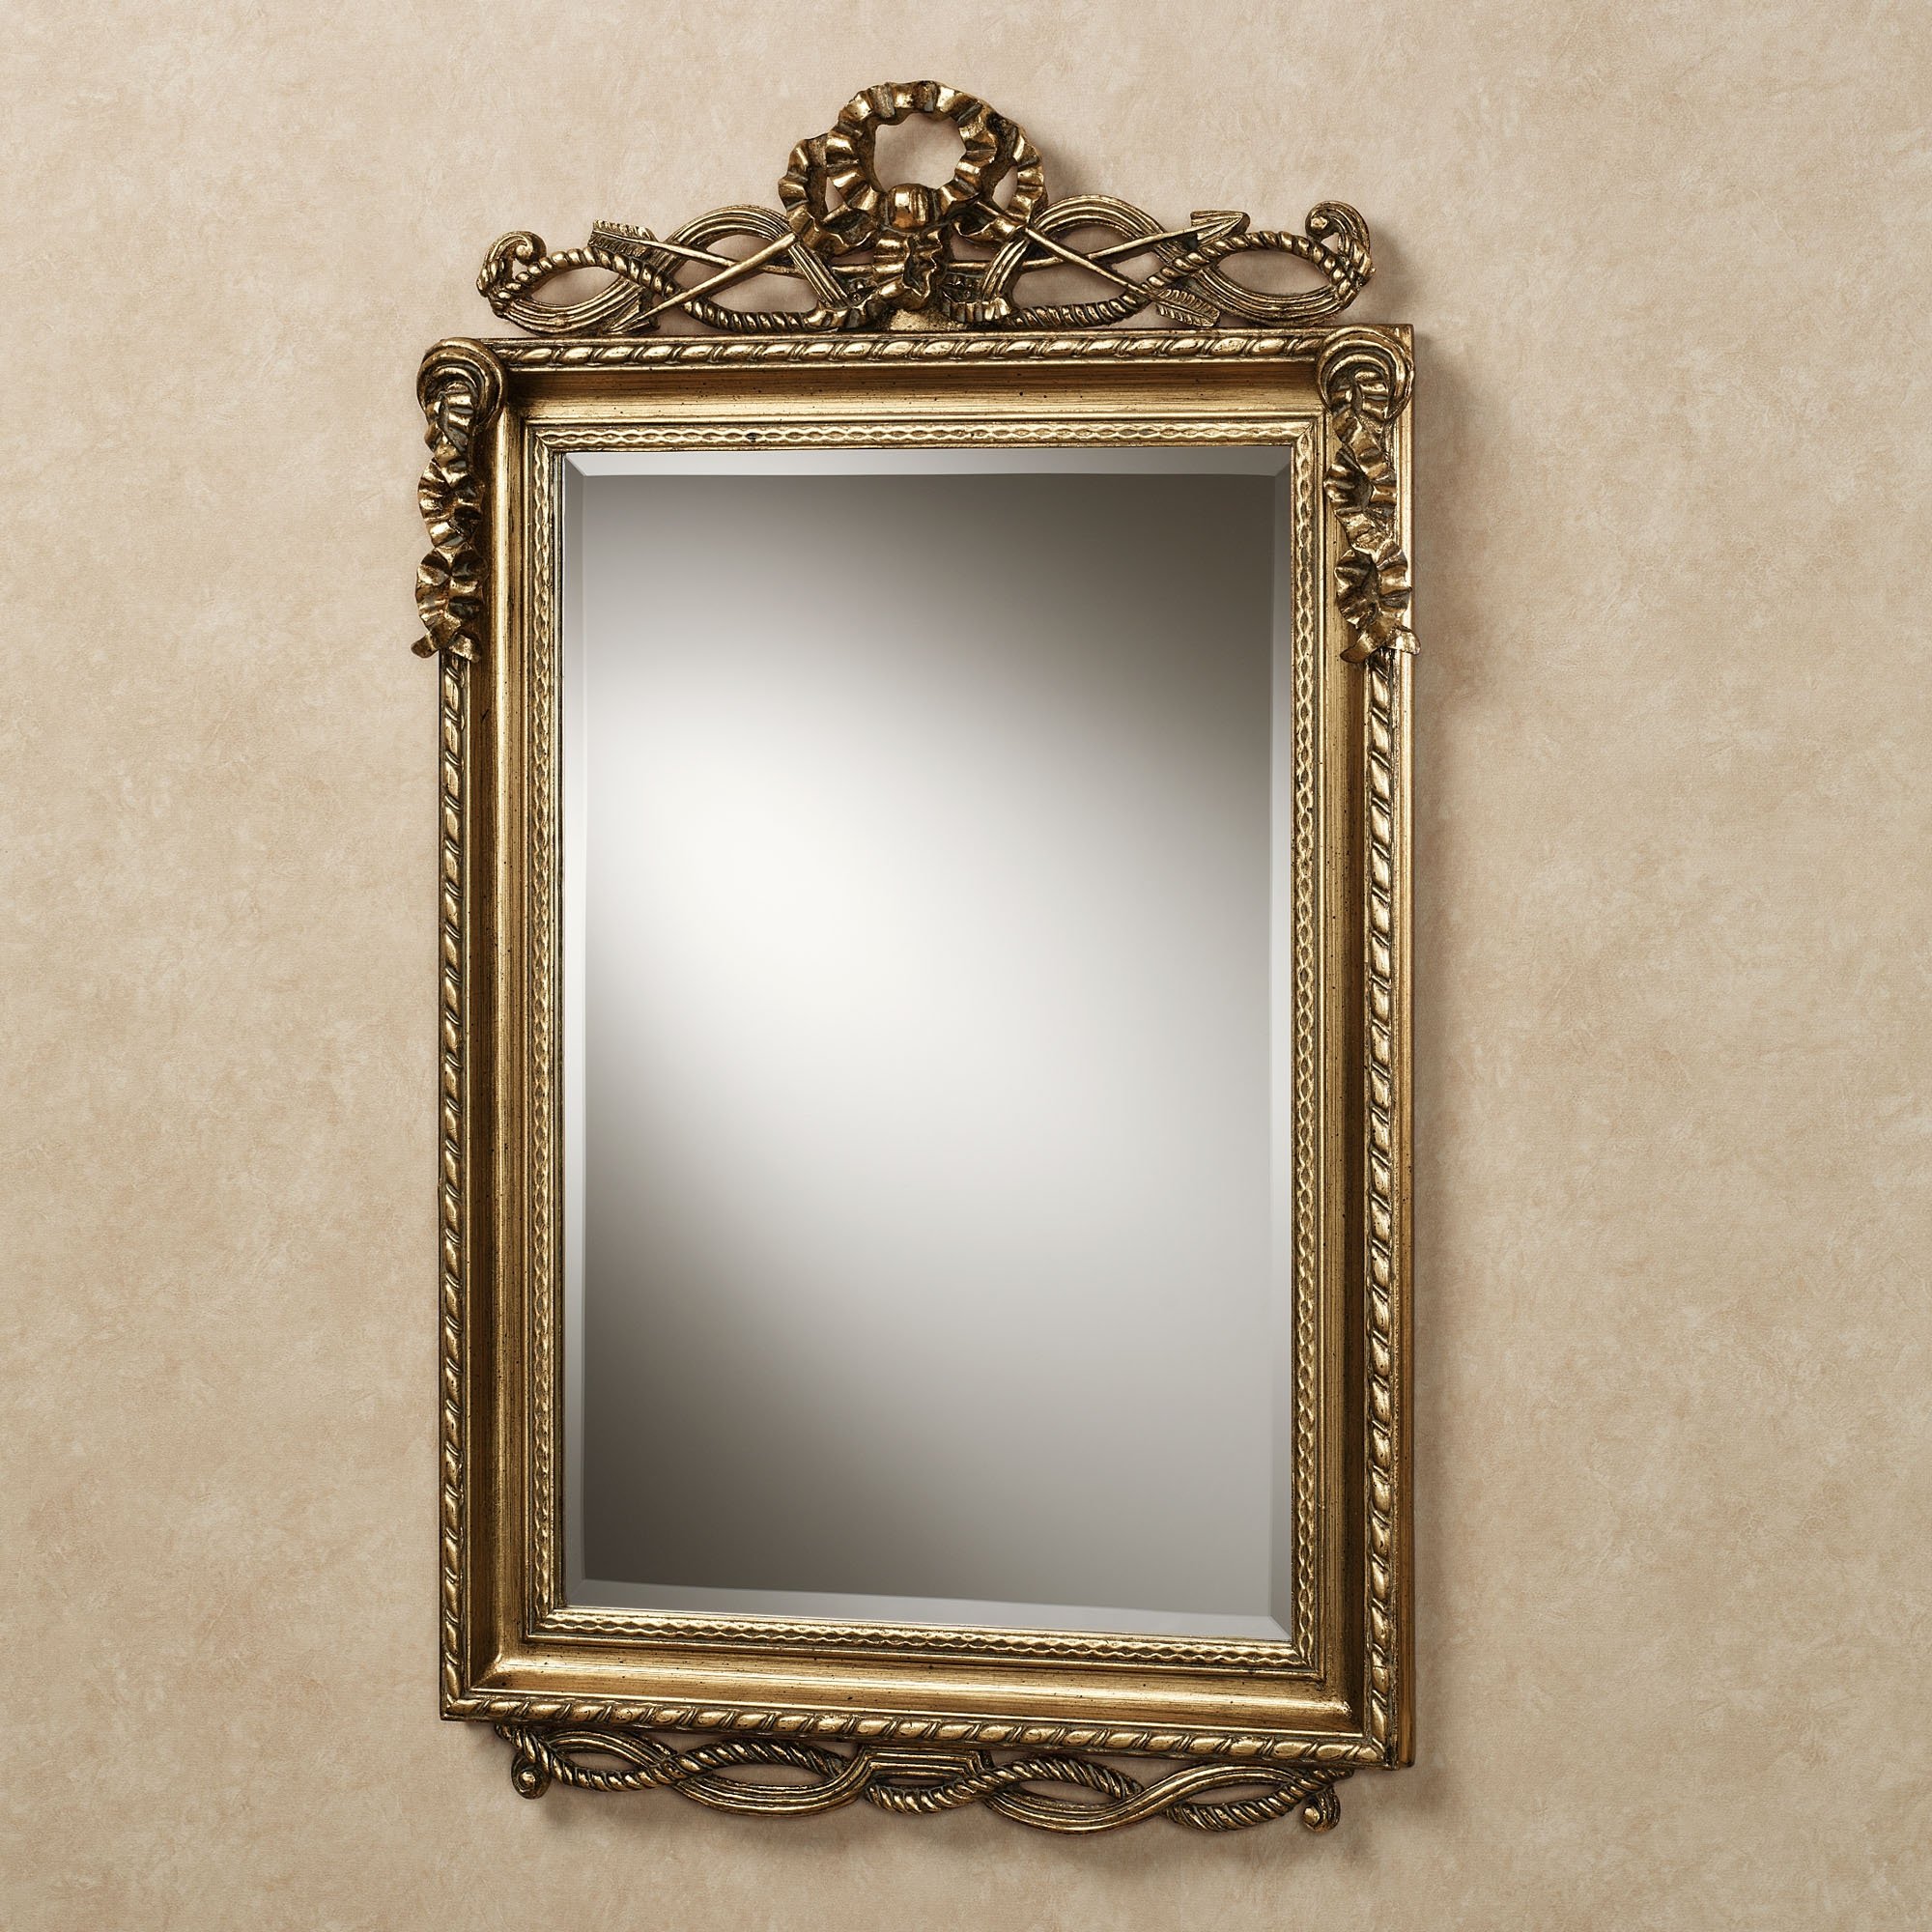 Stunning Ideas Vintage Wall Mirrors Pretty Decorative Vintage With Vintage Mirrors For Sale (View 10 of 15)